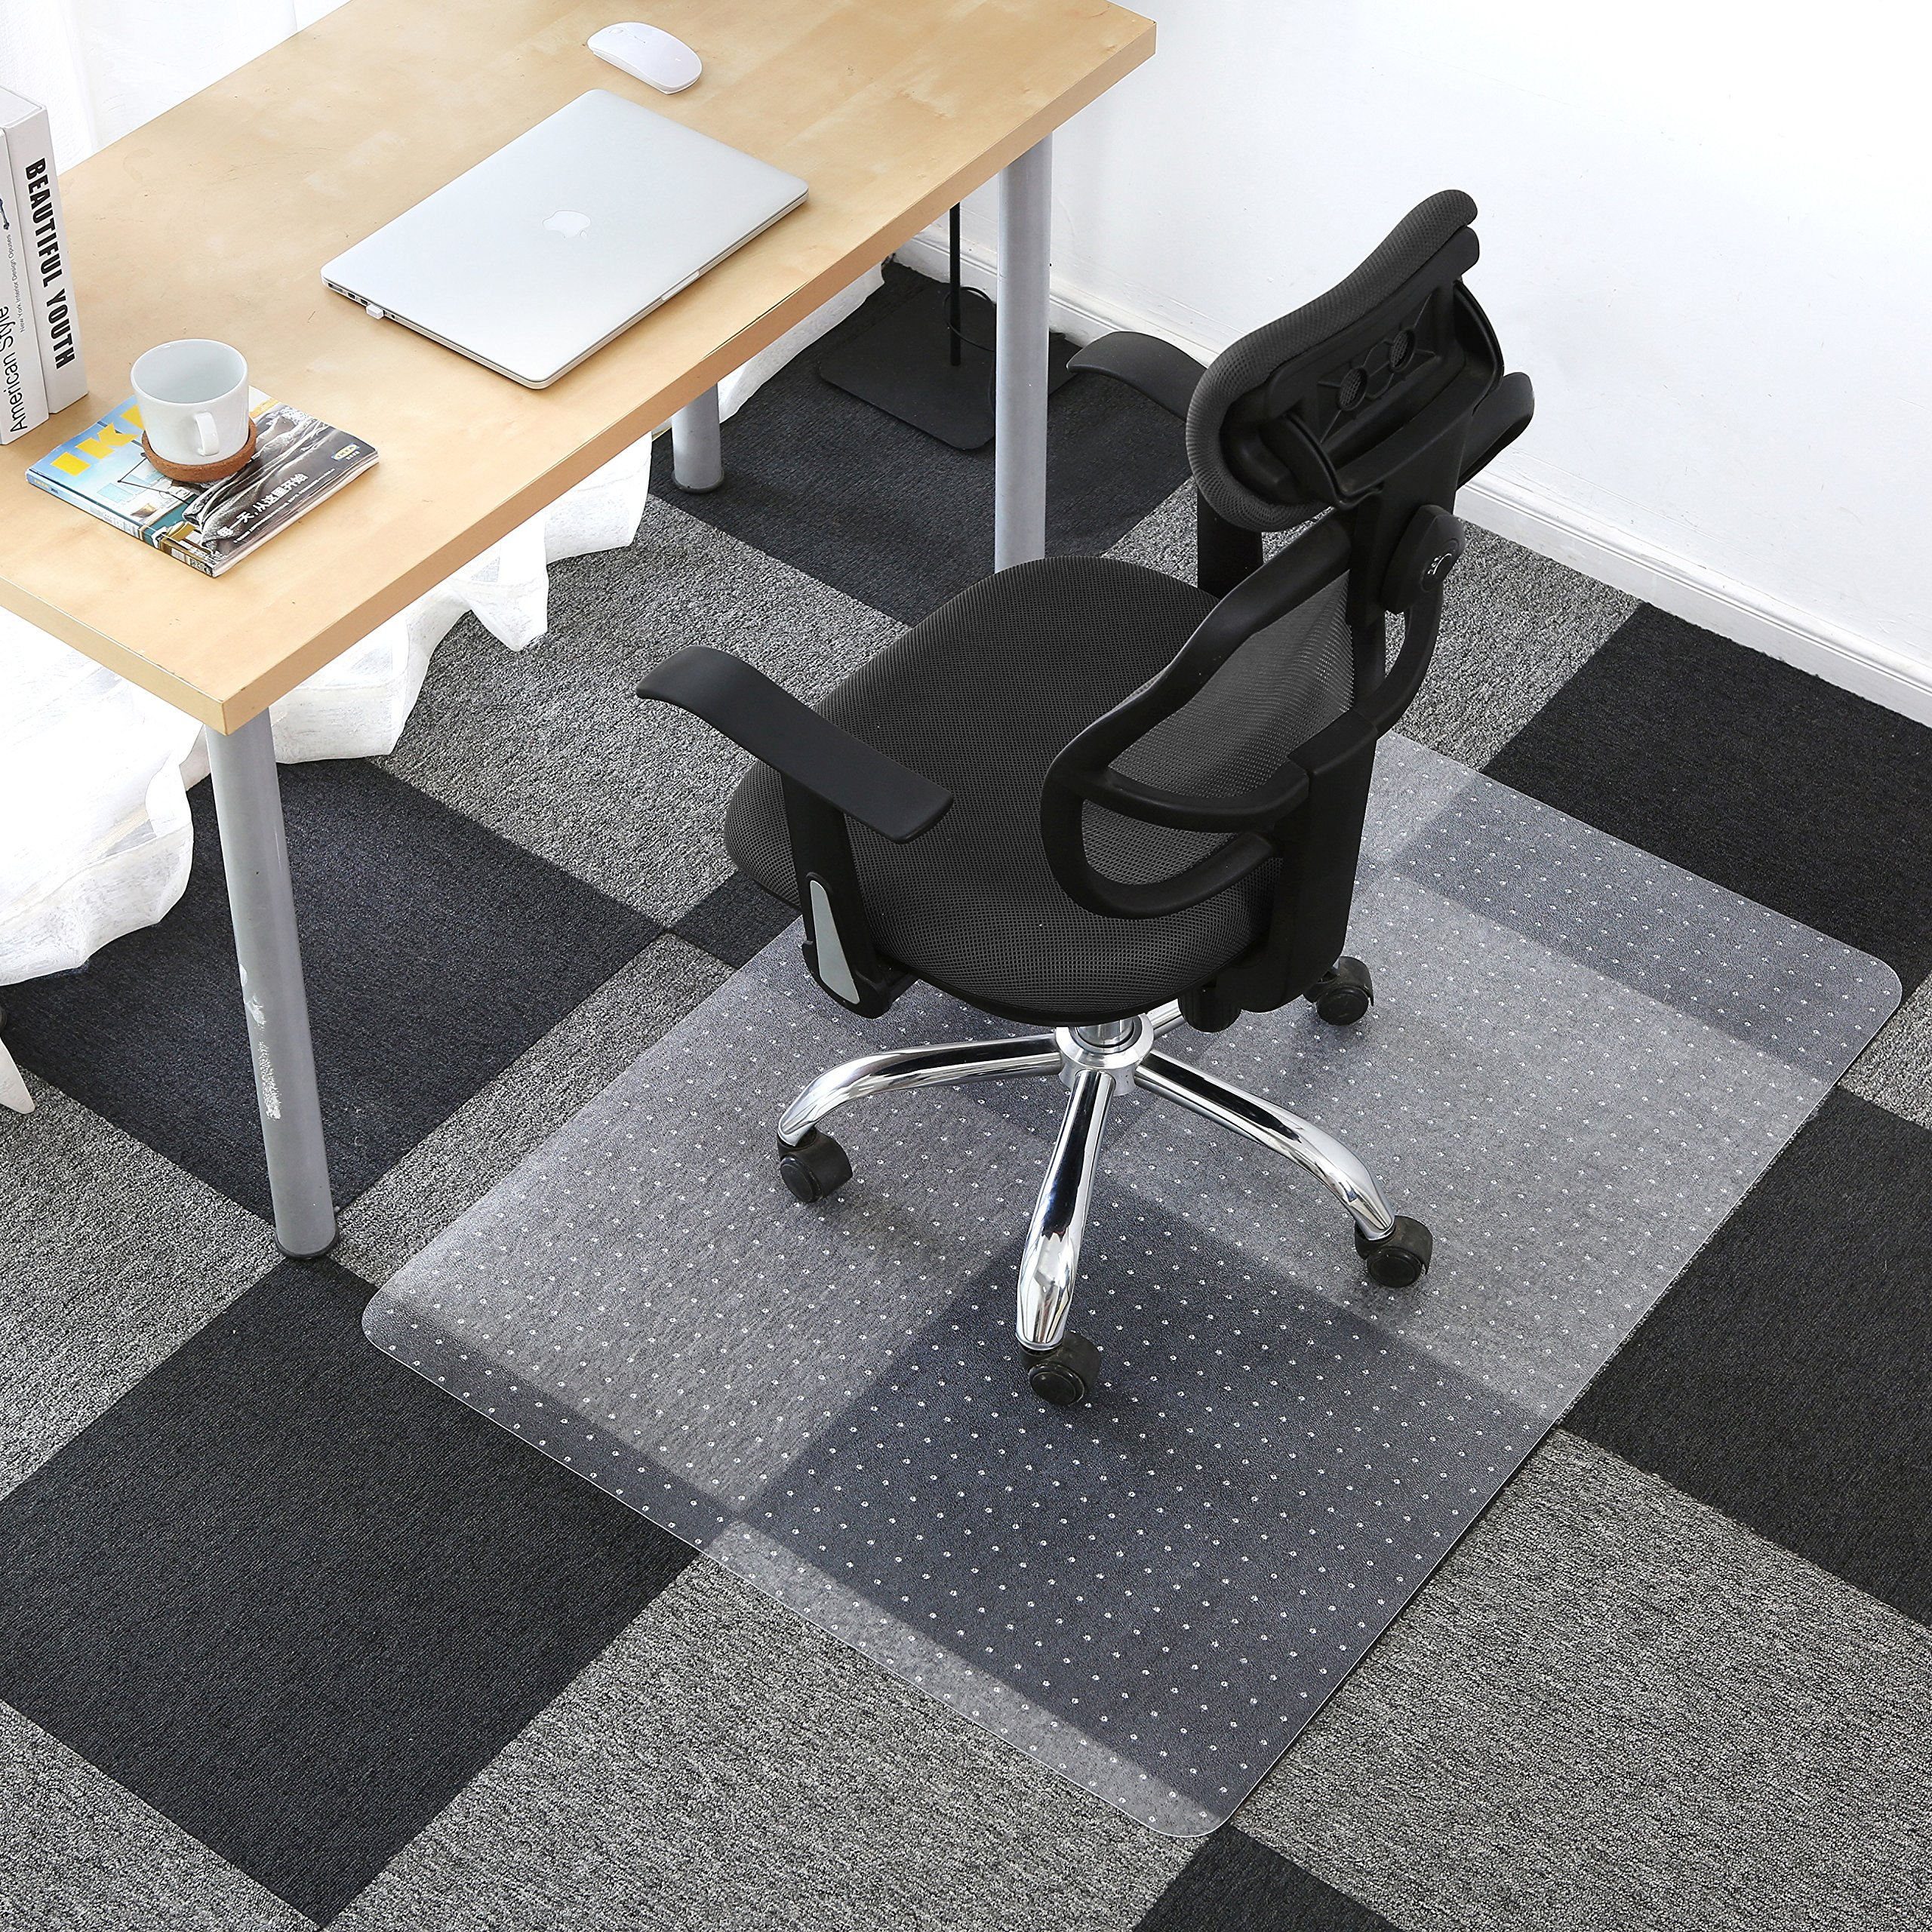 ALPHA HOME PVC Carpet Chair Mat for Home and Office | Non-Slip Studded Back | for Low Pile Carpets | Shipped Flat (36'' x 48'')